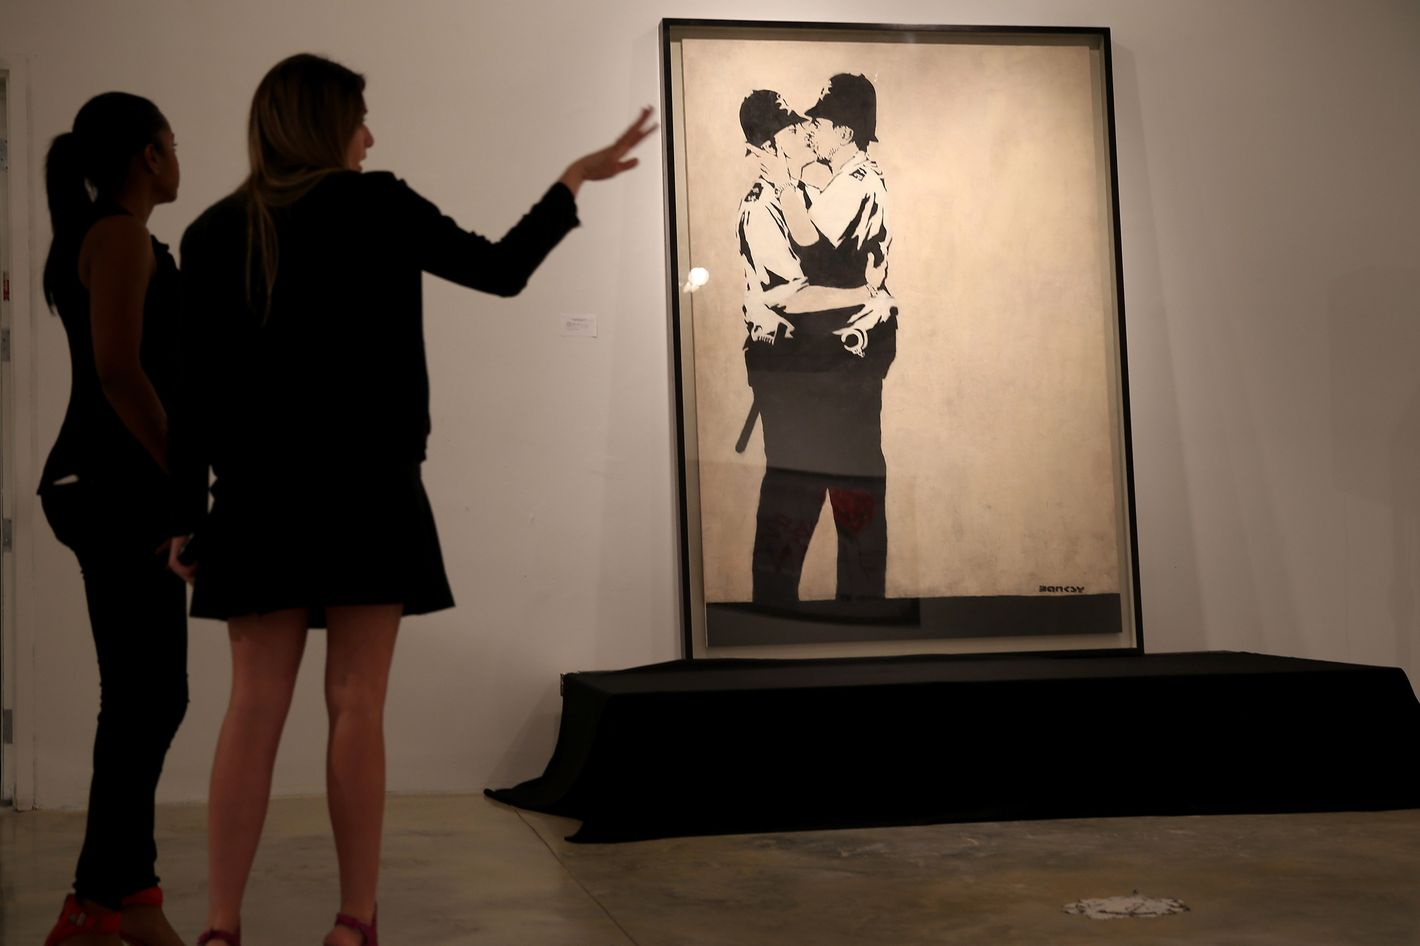 """People stand near a piece of art titled """"Kissing Coppers"""" by the artist Banksy before it went to auction at the Fine Art Auctions Miami Street Art Auction at LMNT on February 18, 2014 in Miami, Florida. Three pieces of art by Banksy along with about 50 other lots by other artists such as  Kenny Scharf, Basquiat, Bambi, Speedy Graphito went on the auction block."""